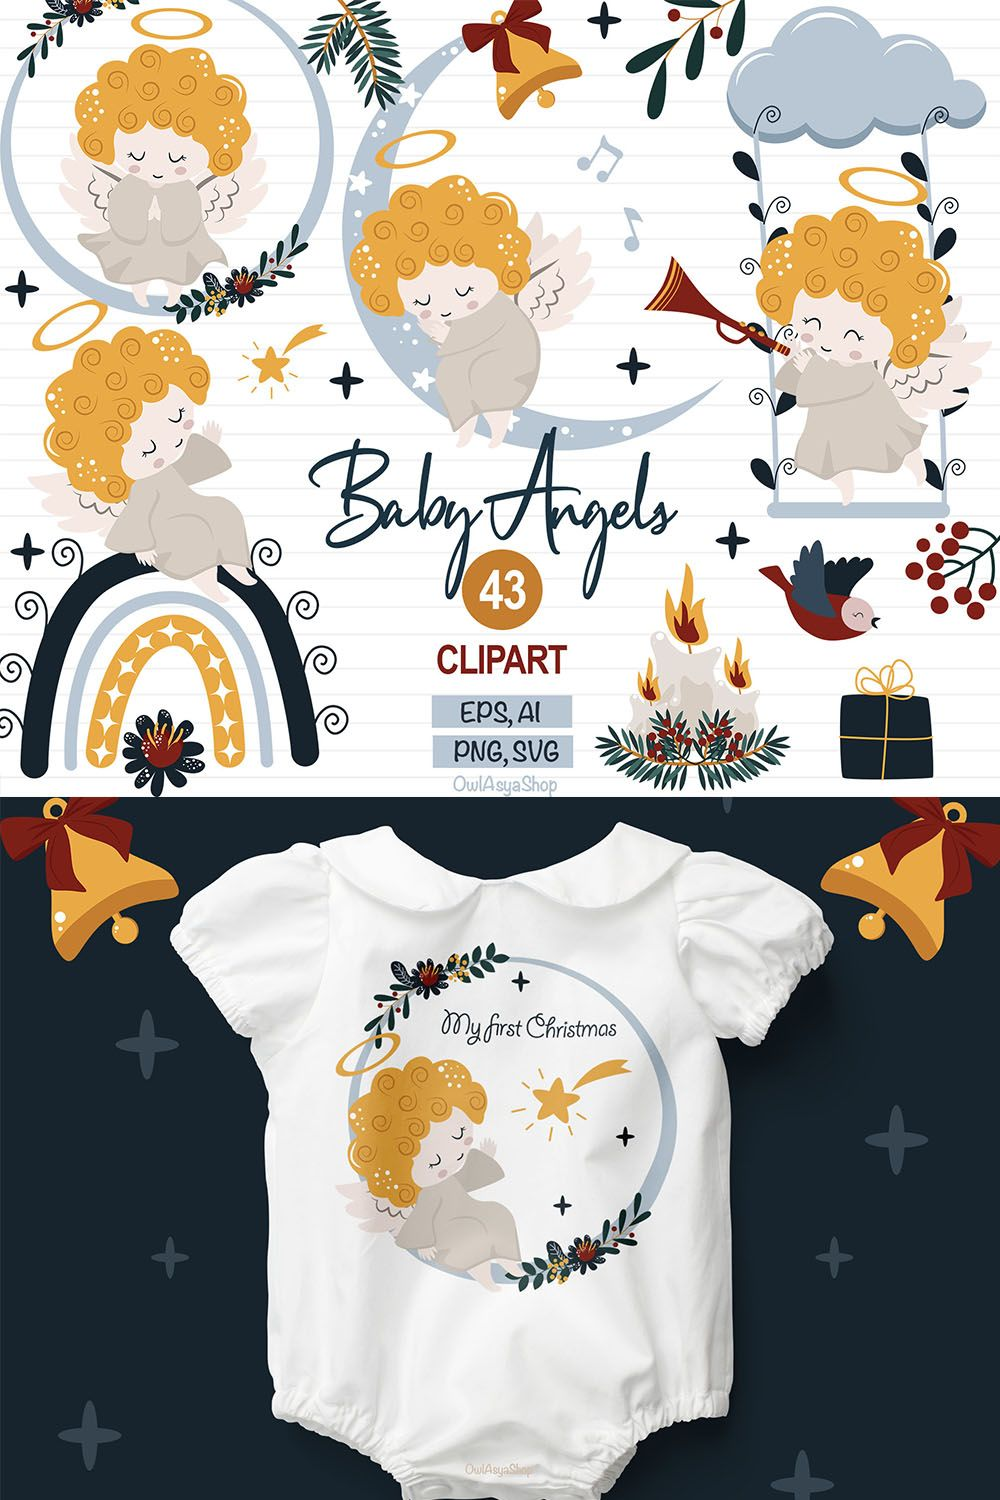 Baby Angel Svg : angel, Angel, Clipart, Christmas, Clipart,